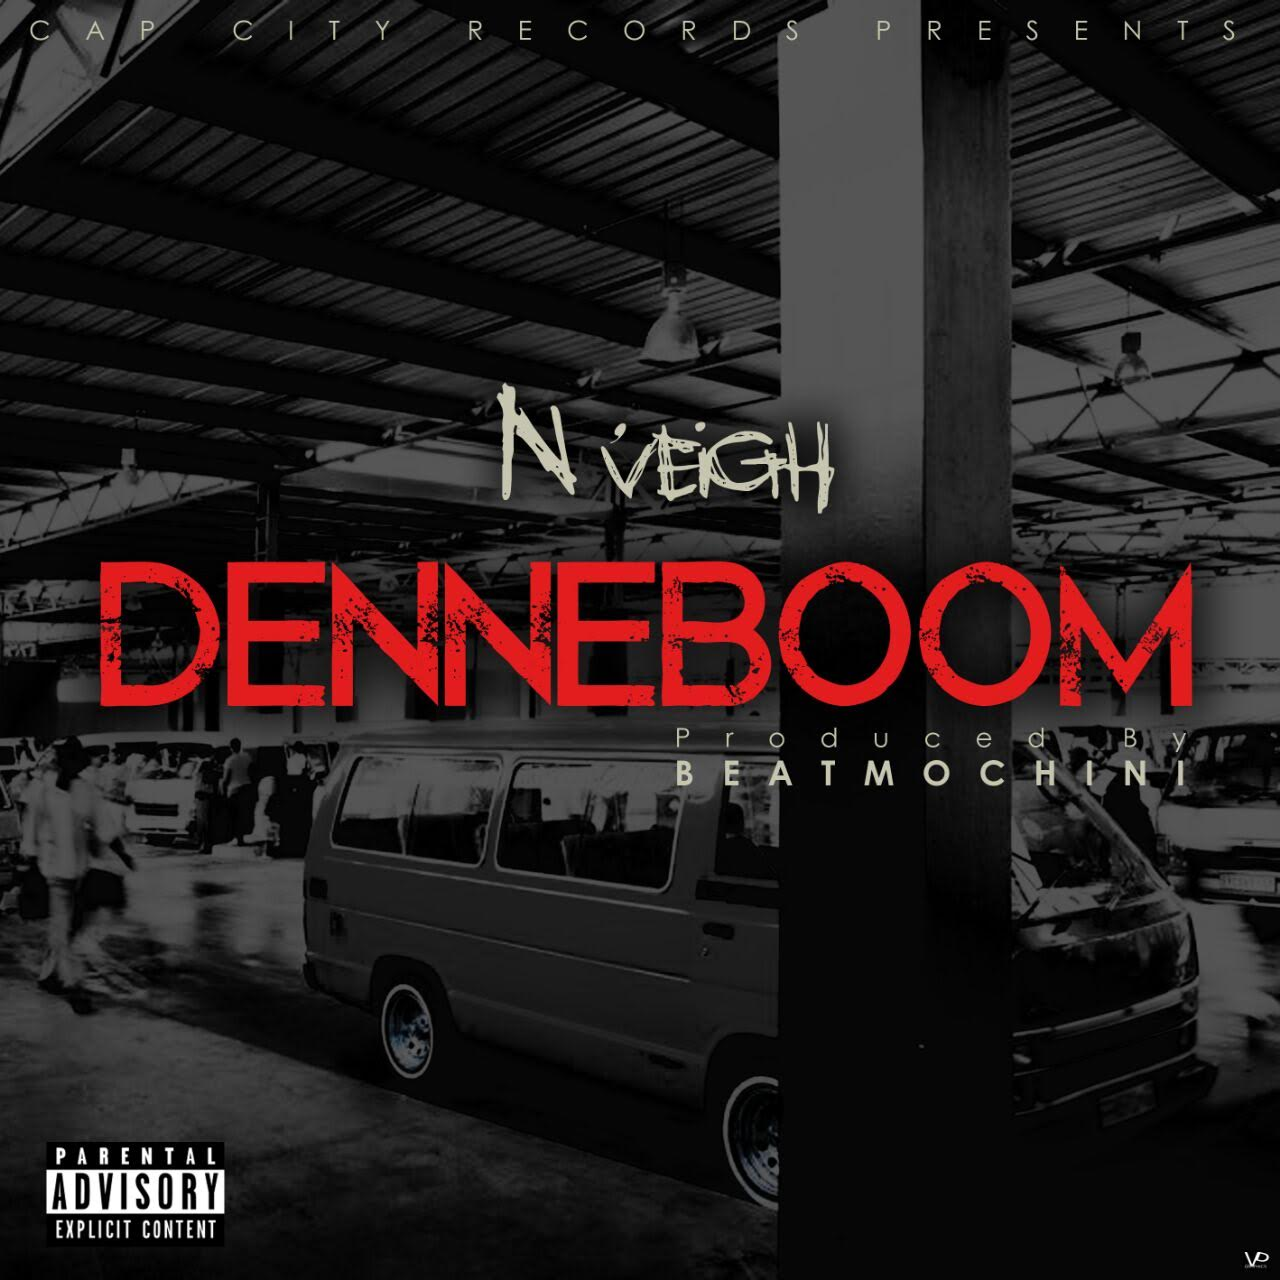 Listen to N'veigh's New 'Denneboom' Joint beatmochini